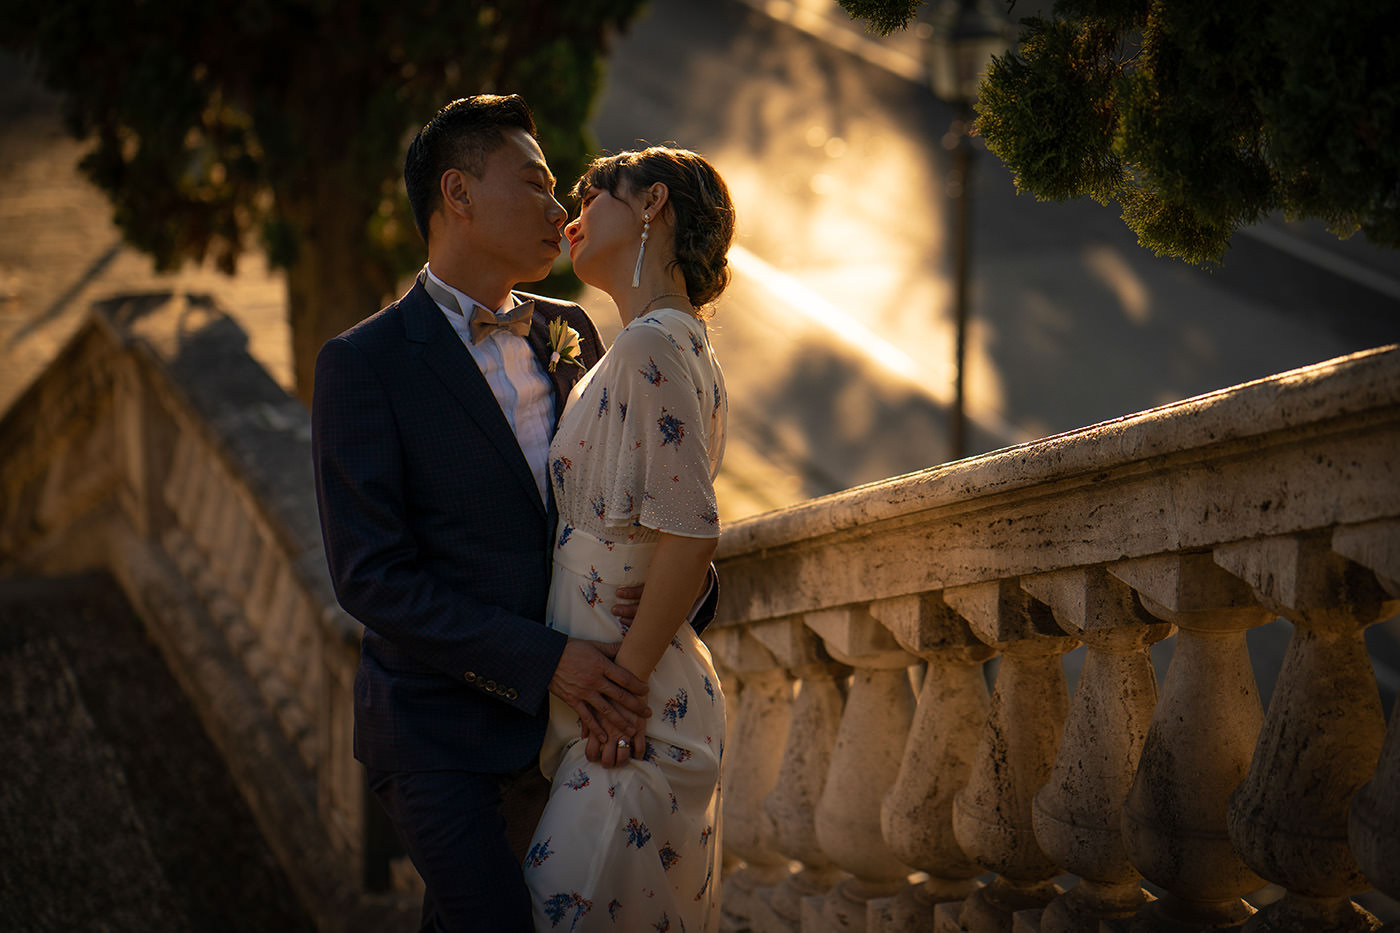 Professional Wedding Photographer in Florence - Duccio Argentini